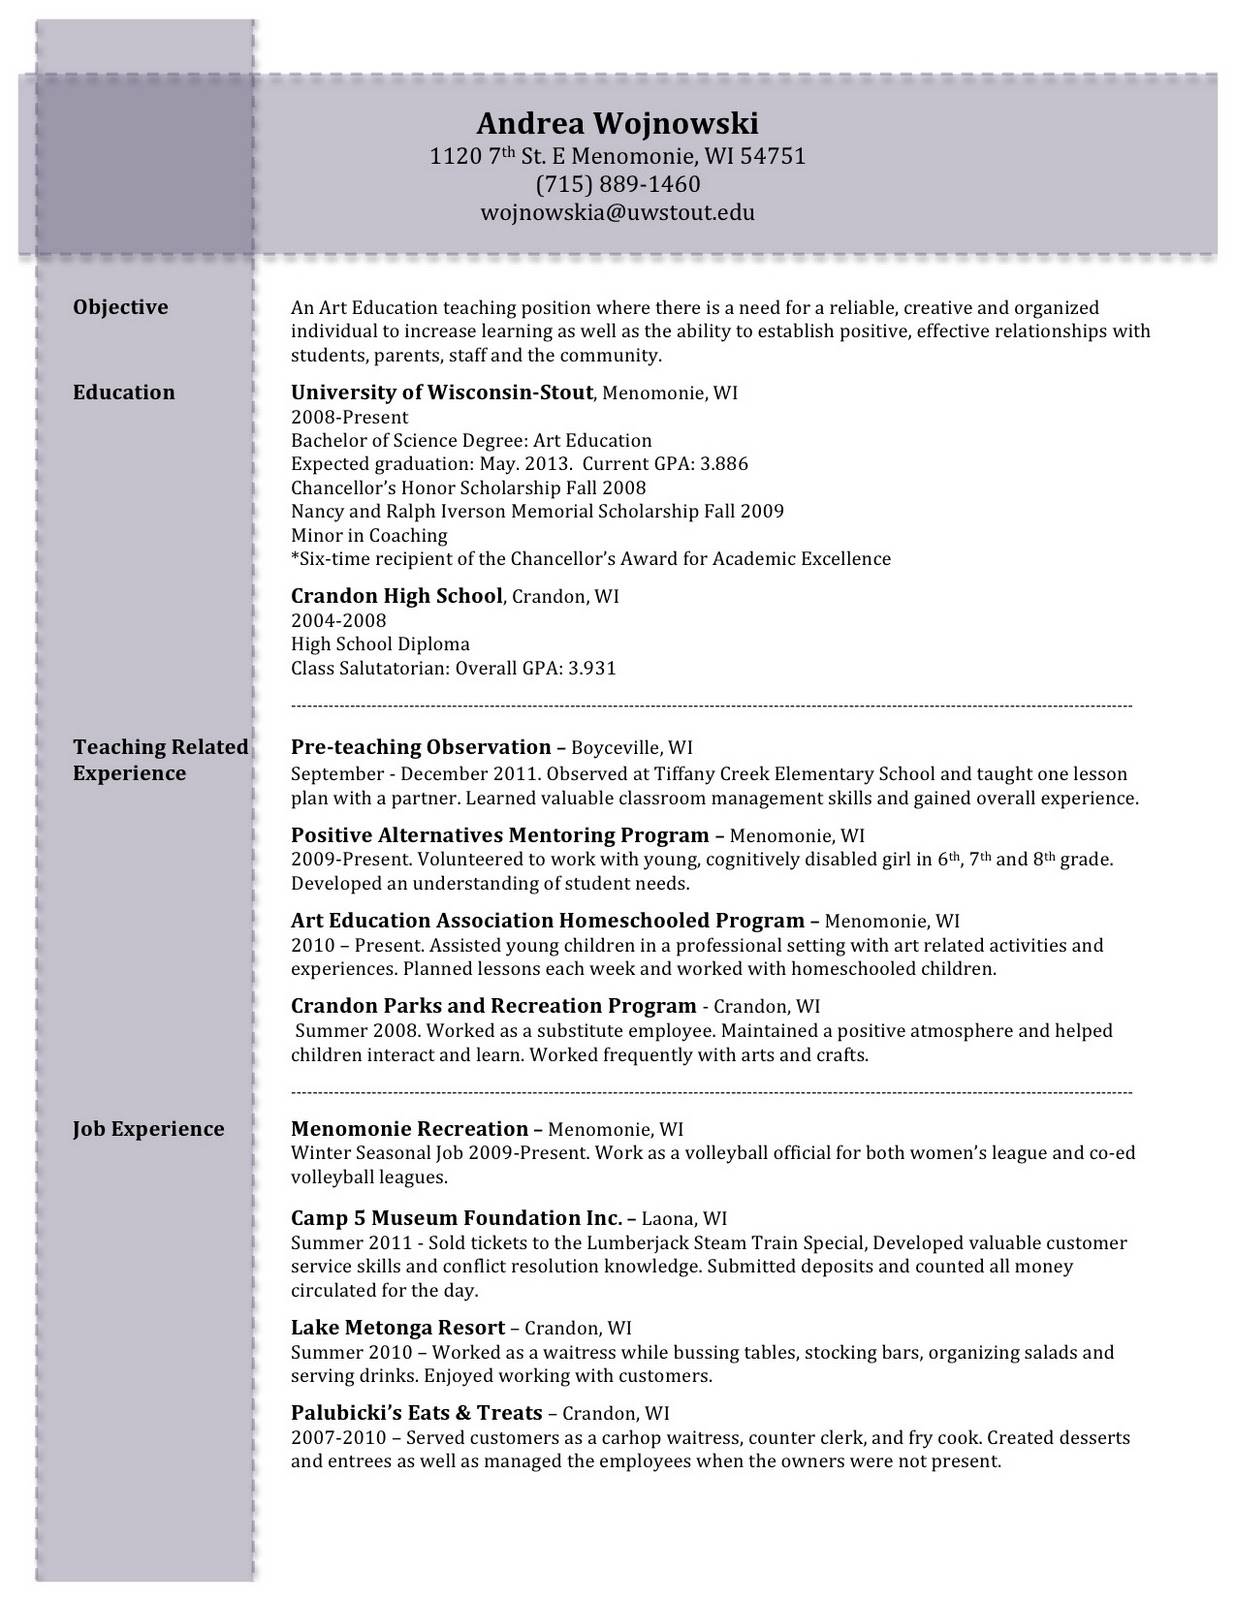 Name Your Resume Examples 24.05.2017